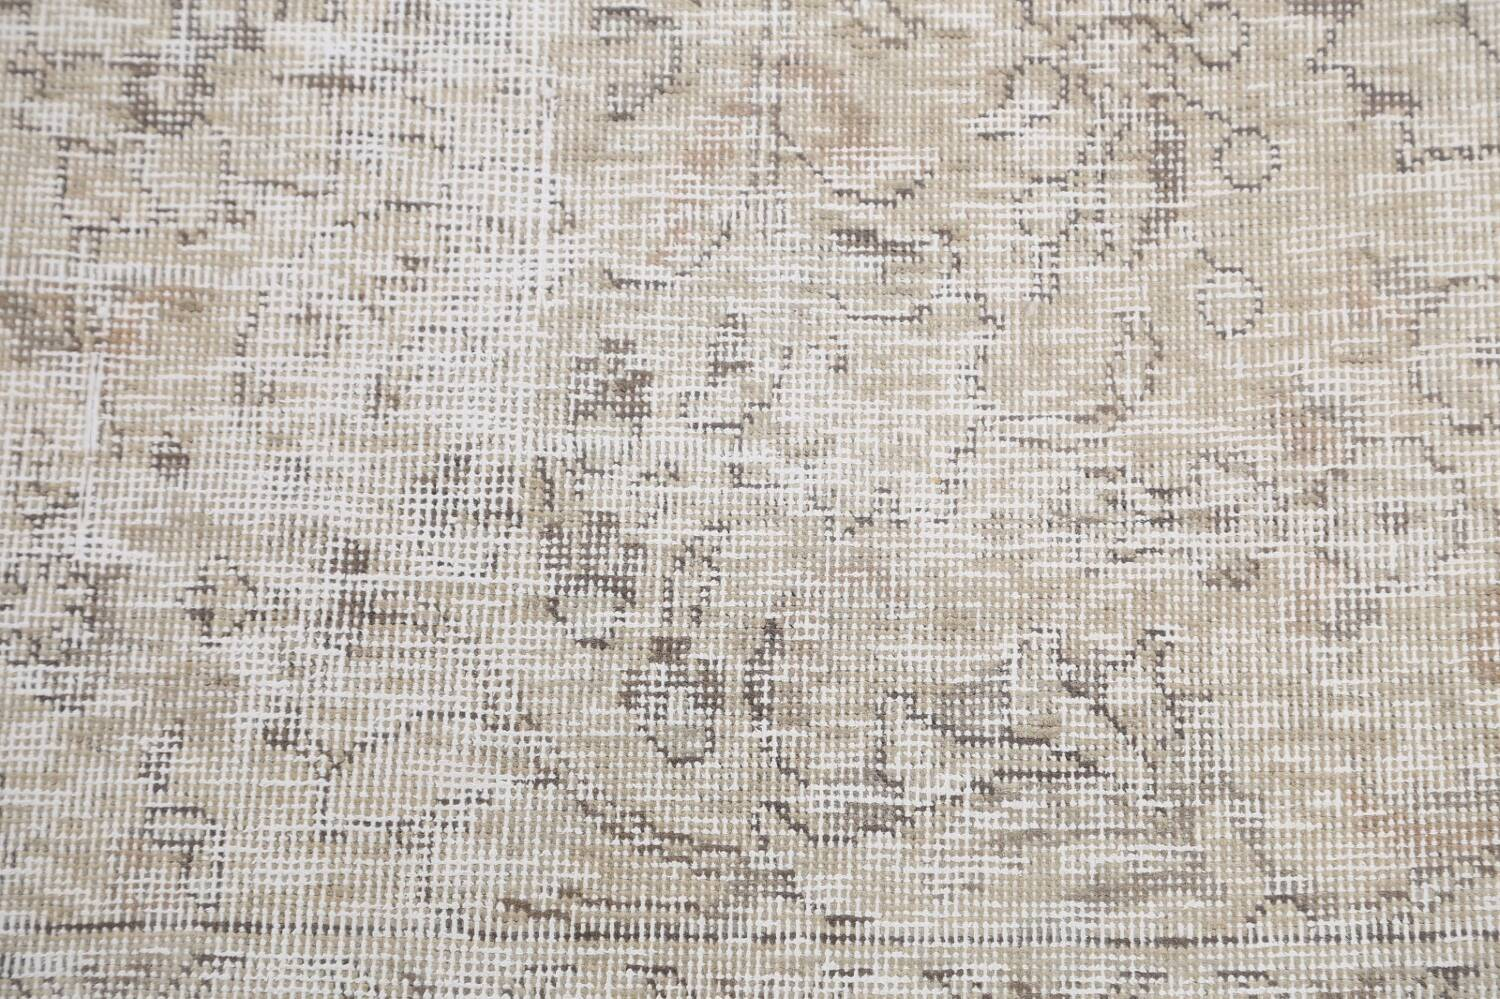 Antique Muted Vintage Distressed Oriental Area Rug 10x11 image 9